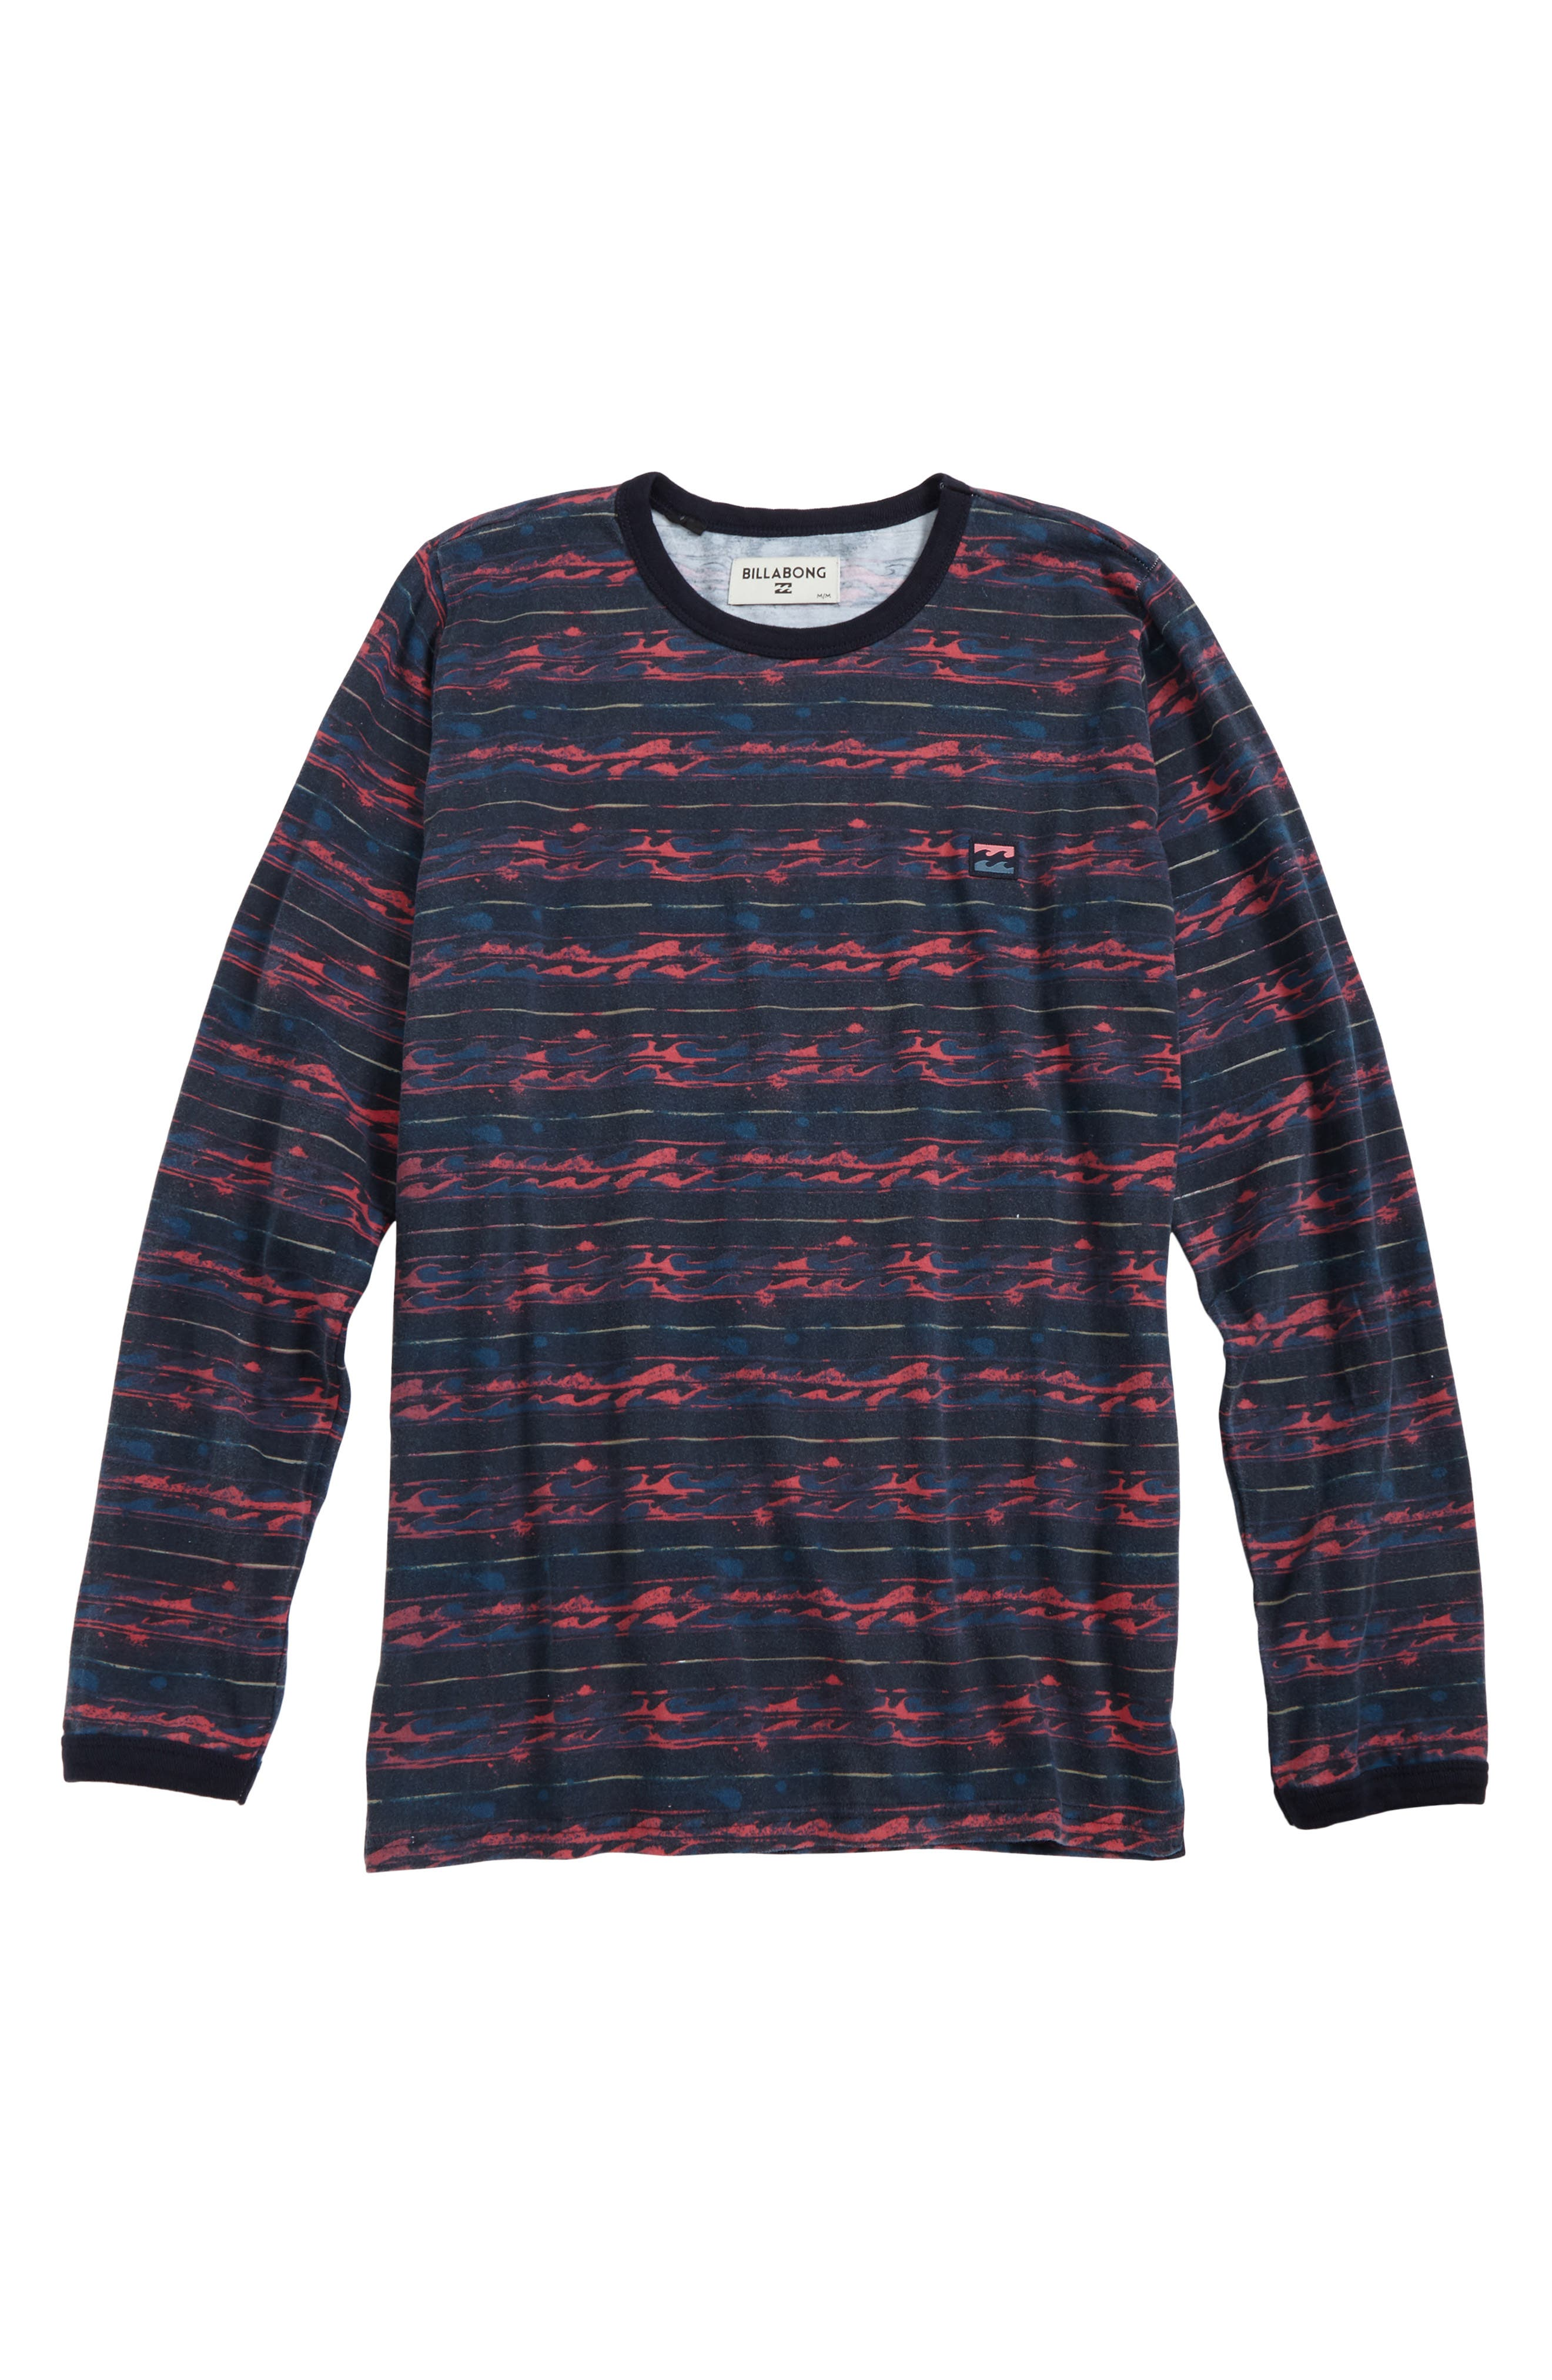 Nelson T-Shirt,                         Main,                         color, Navy